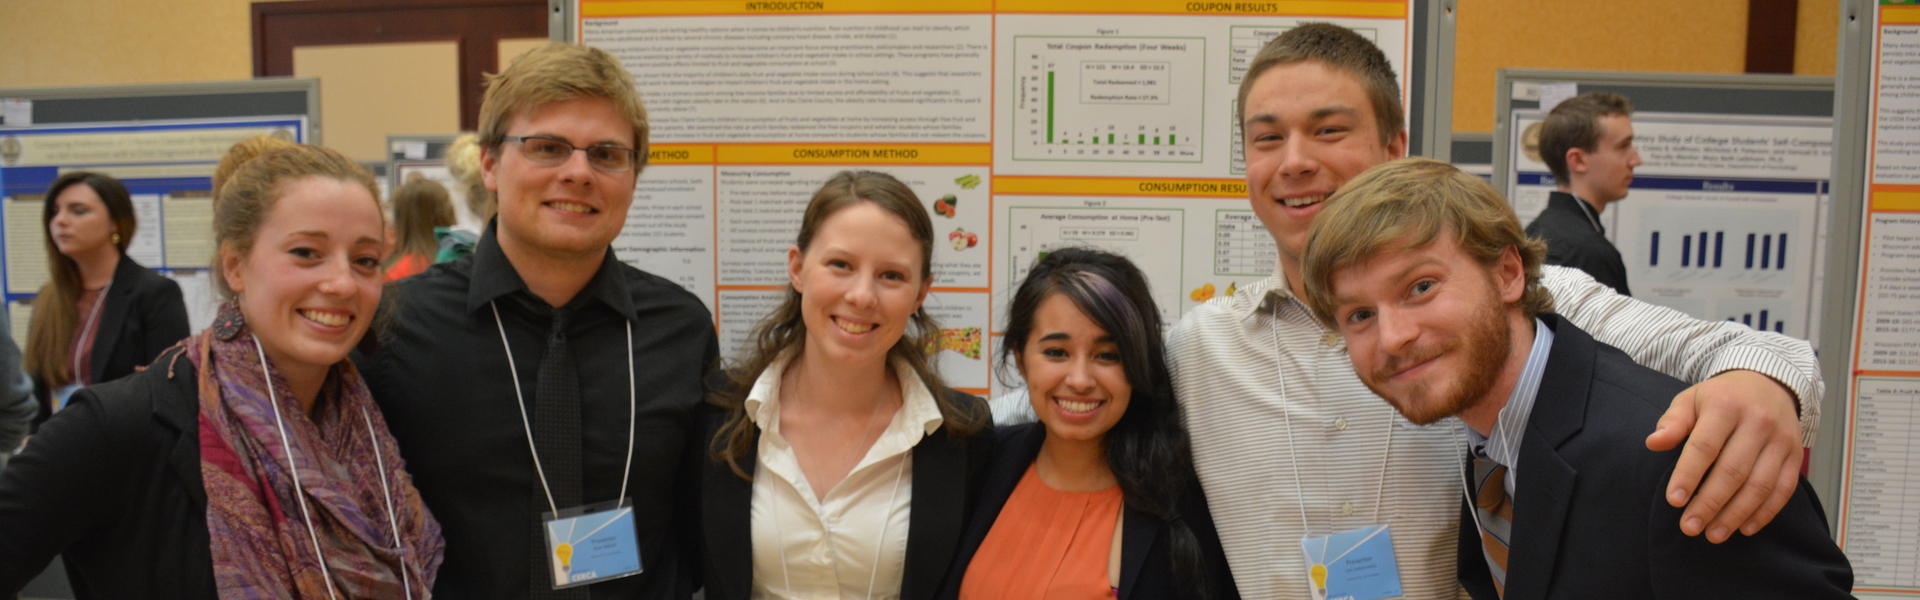 Economics student research team at CERCA presentation 2016